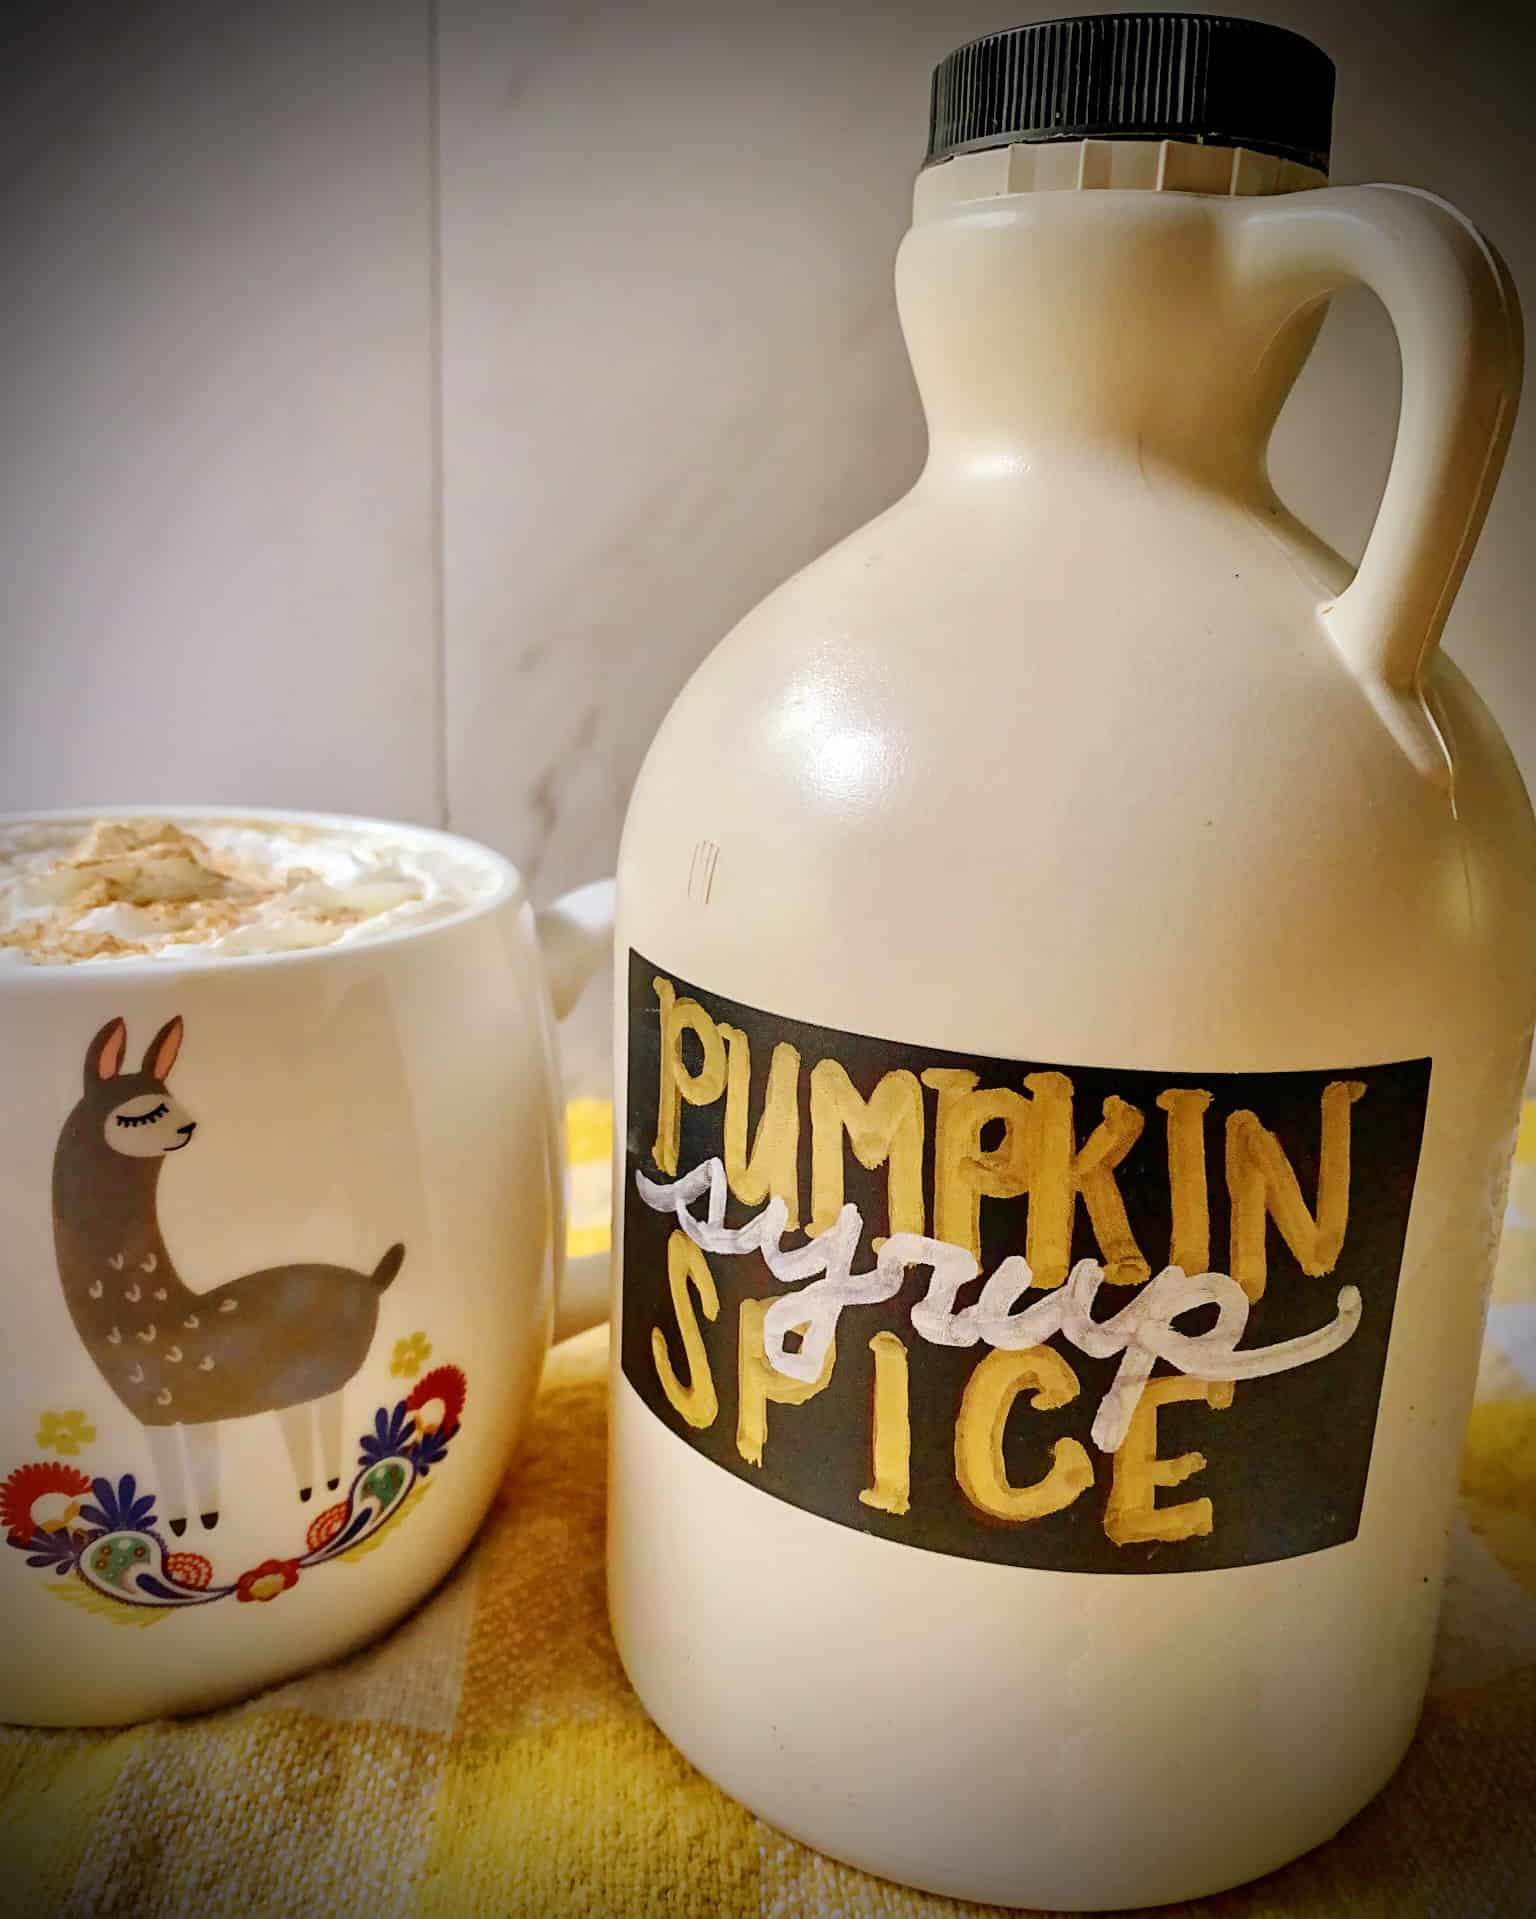 pumpkin spice latte with a jug of homemade pumpkin spice syrup